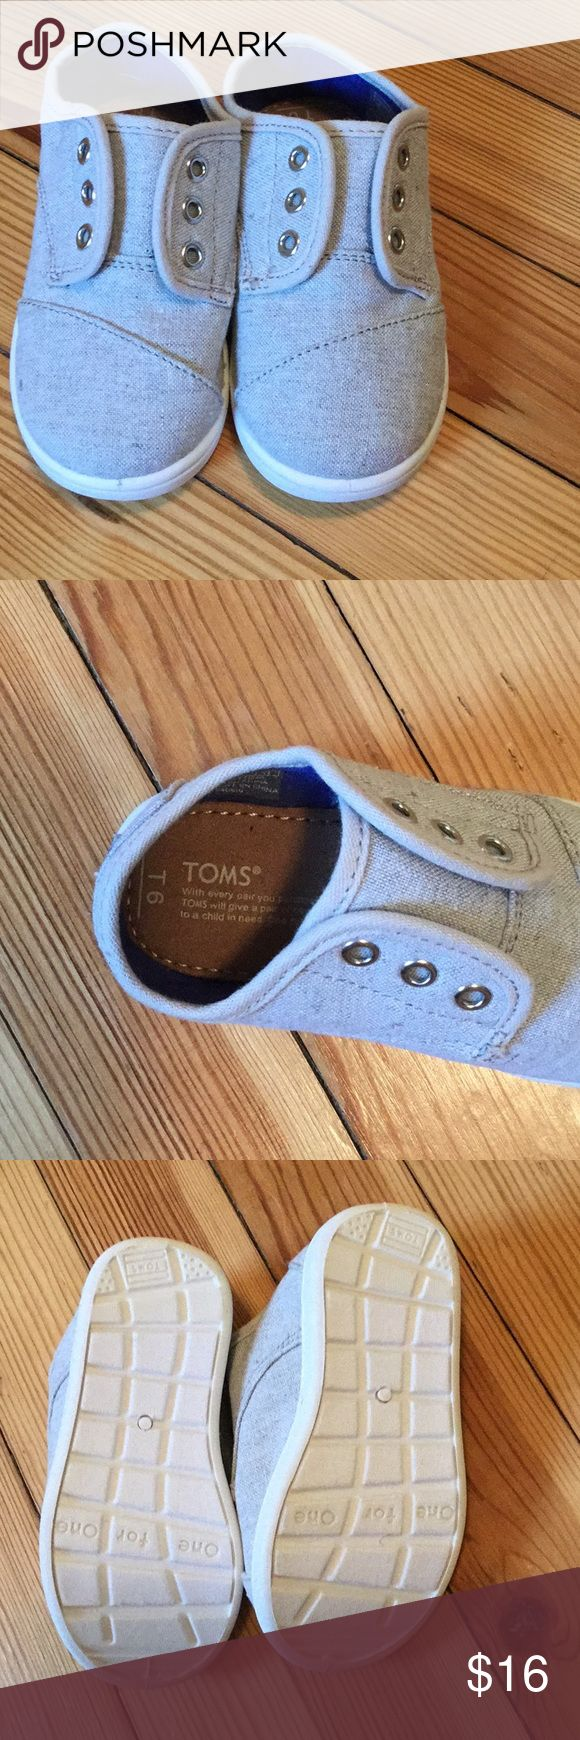 Toms kids sneakers 6T Beautiful grey Toms kids sneakers-New without tags-never worn! Toms Shoes